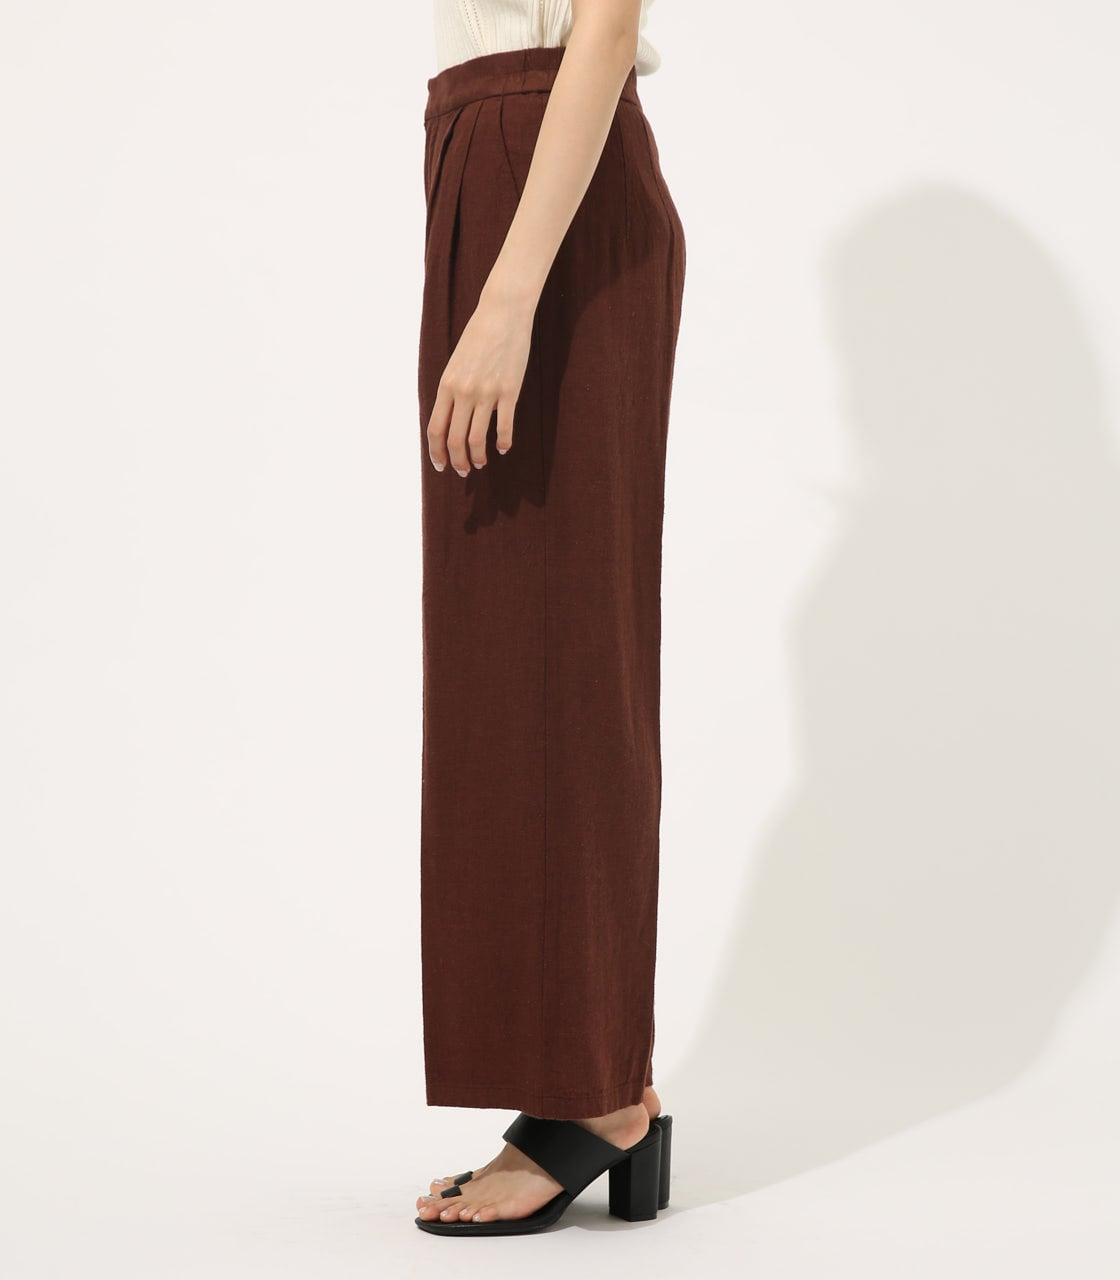 【AZUL BY MOUSSY】COTTON LINEN WIDE PANTS【MOOK50掲載 90131】 詳細画像 BRN 5